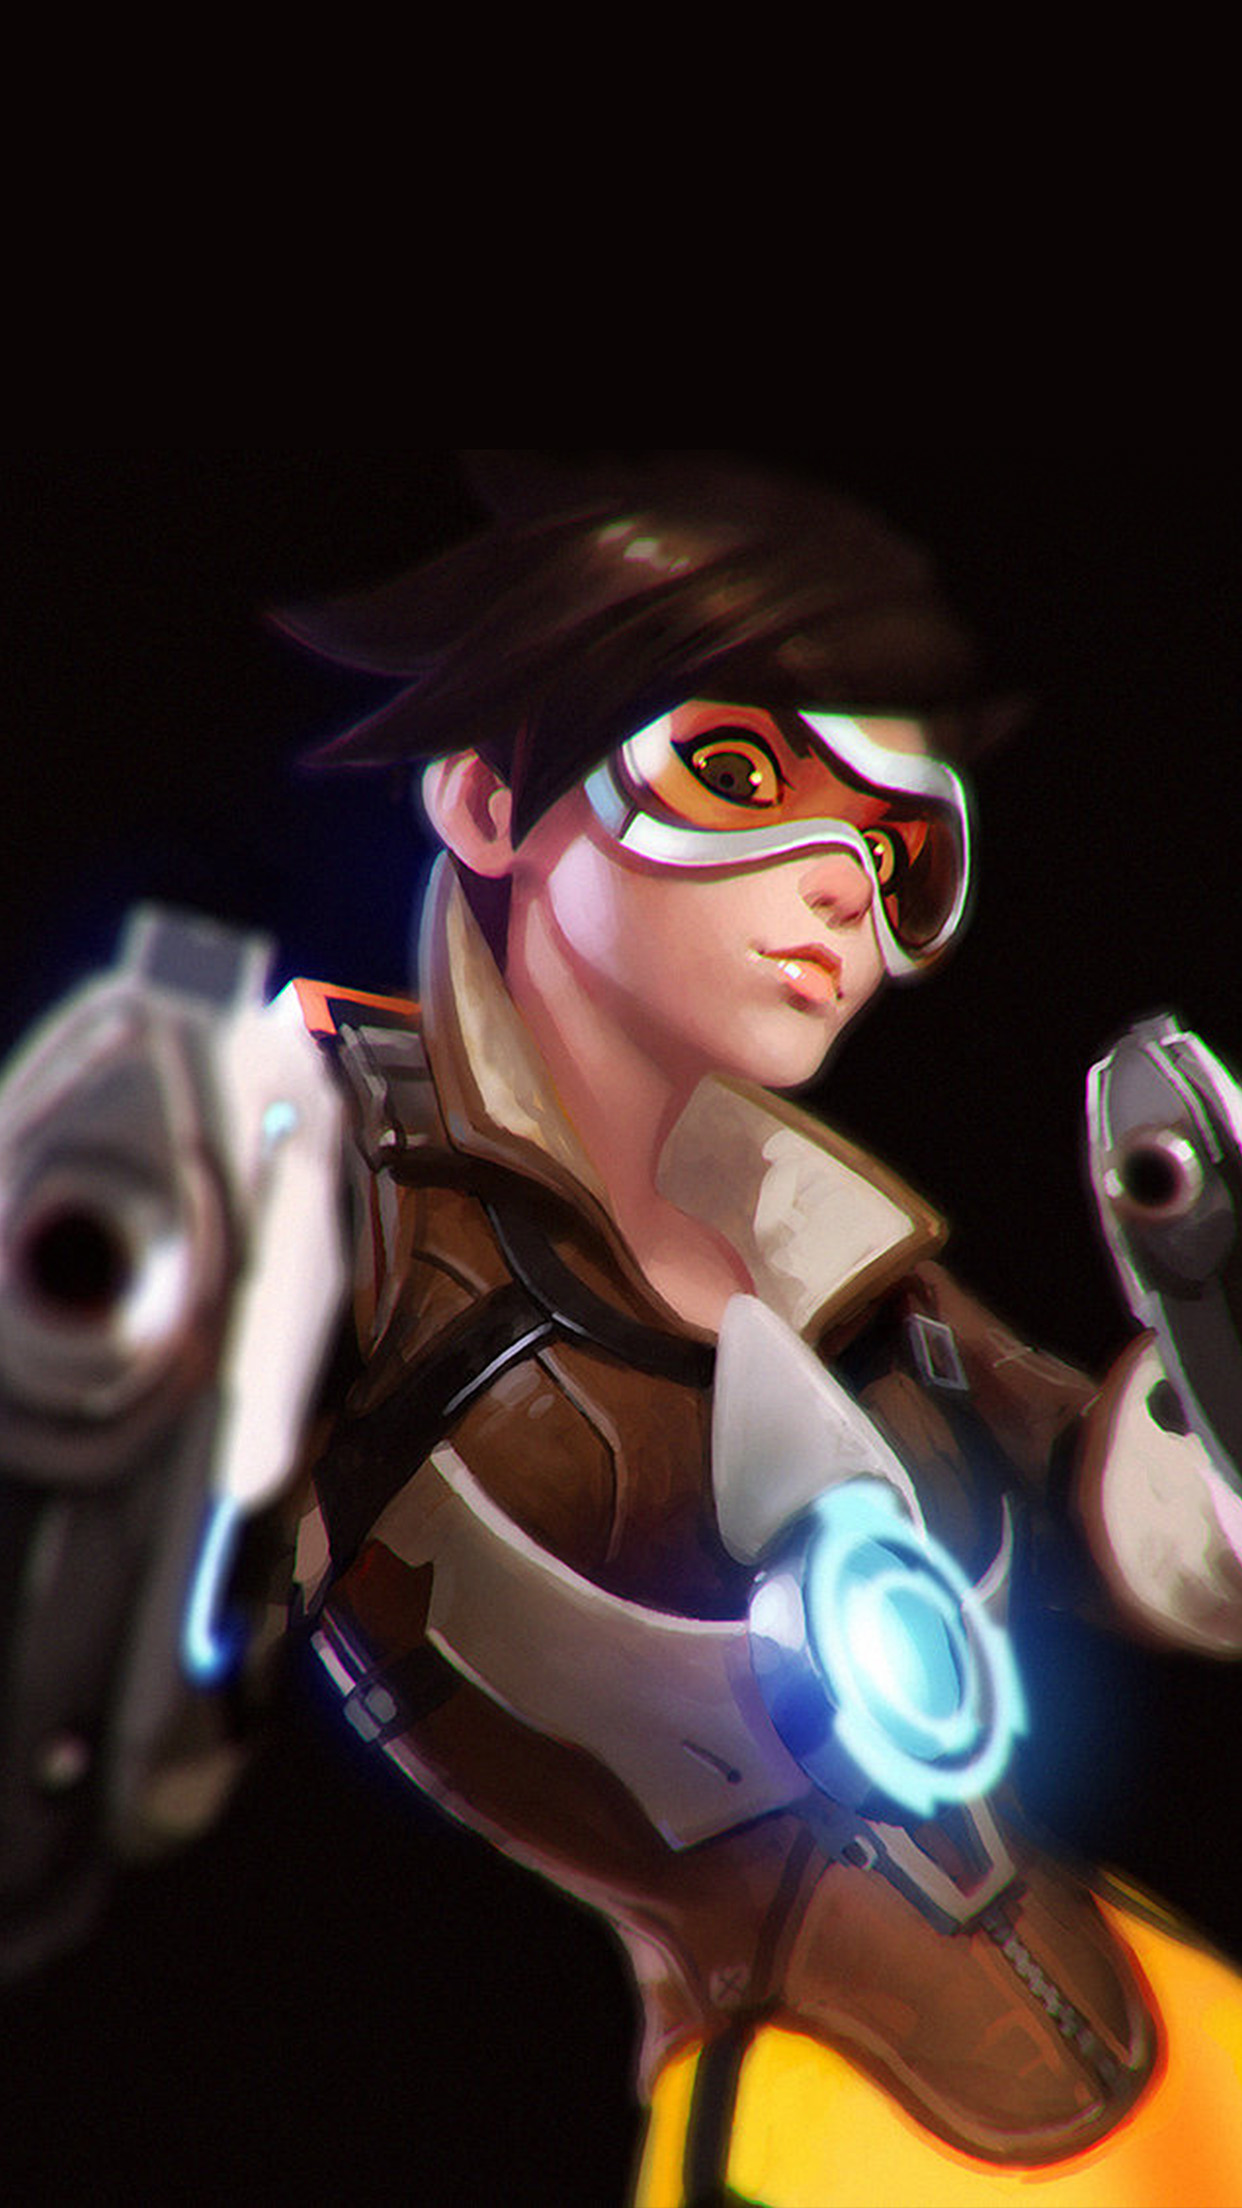 Ay35 Ilya Kuvshinov Overwatch Tracer Hero Game Illustration Art Wallpaper